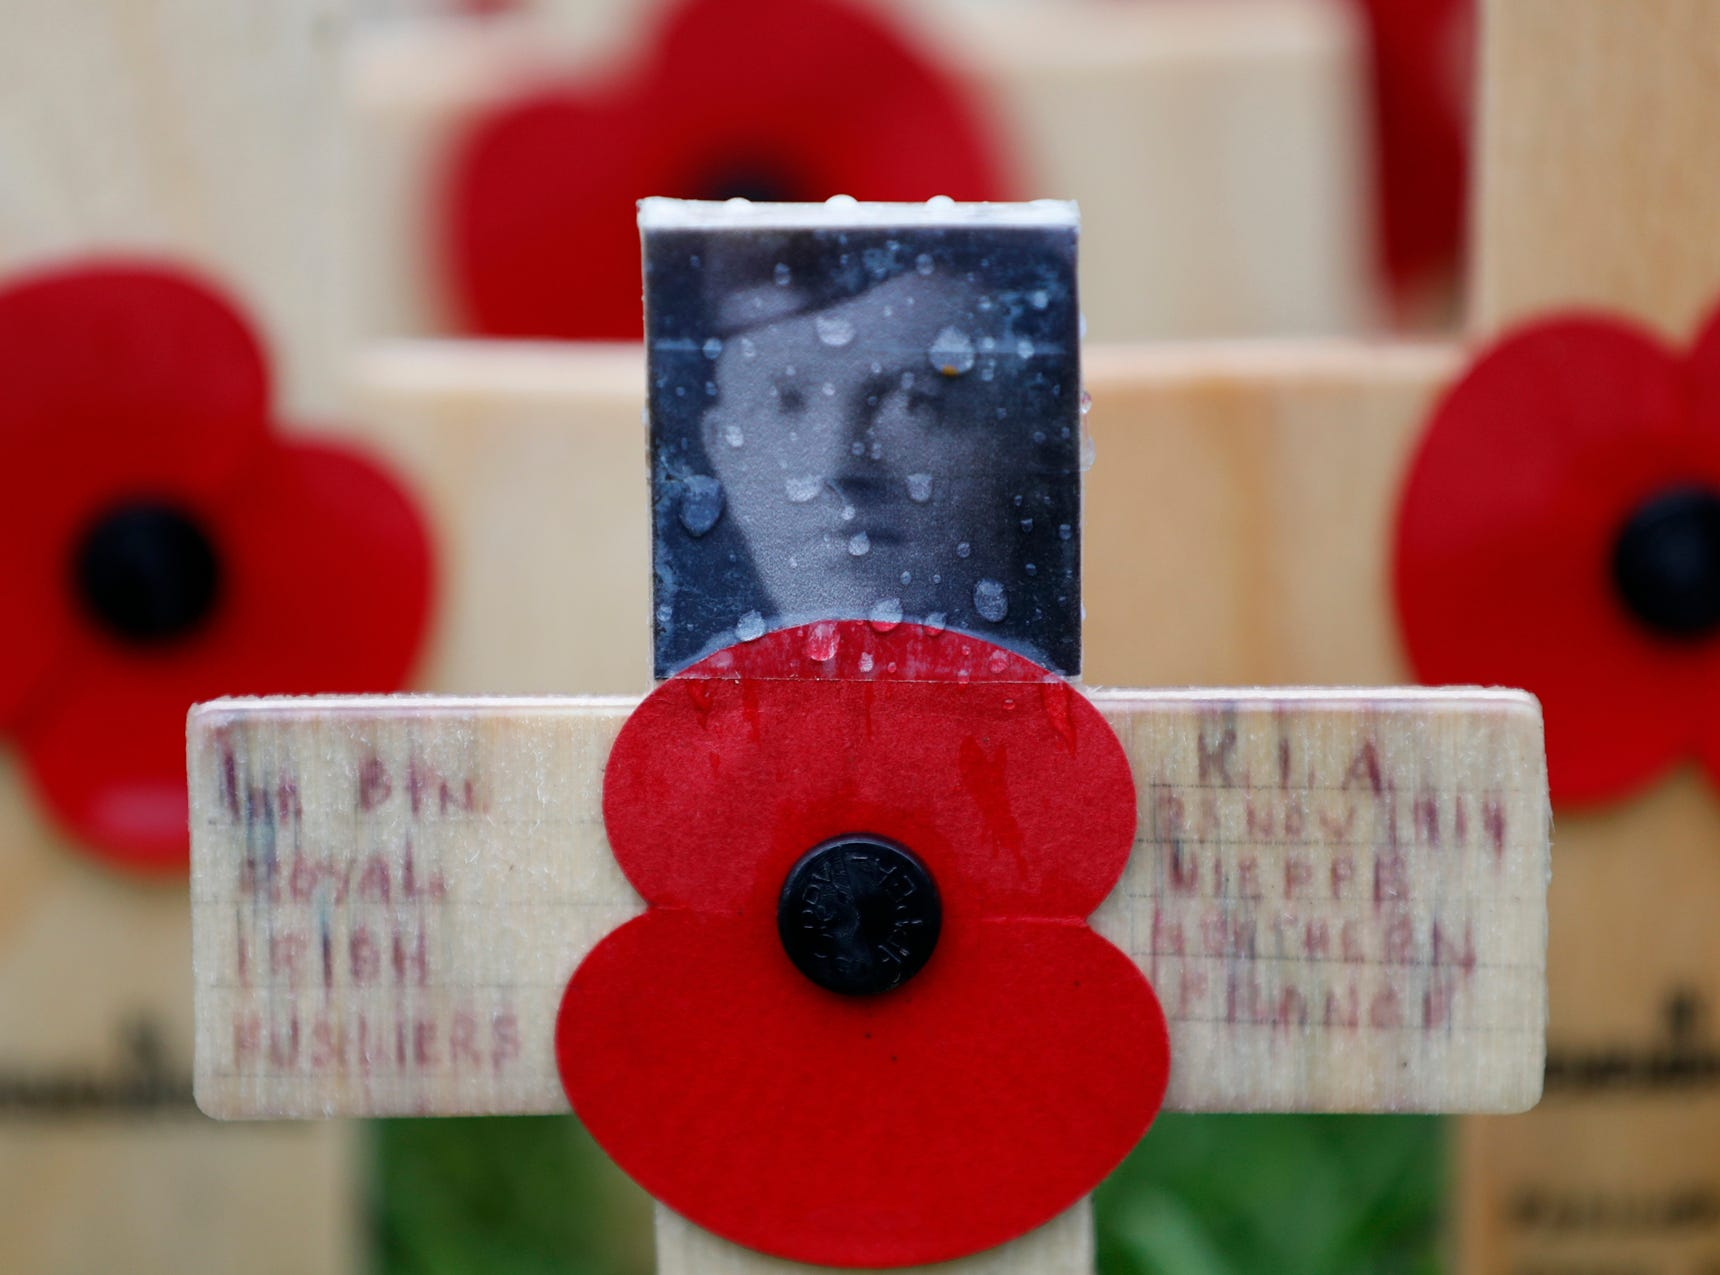 A rain drop covers a photograph of Gerald Briedell of the Royal Irish Regiment who was killed in action on Nov. 23, 1914, adorns a cross placed in the Field of Remembrance at Westminster Abbey in preparation for the annual Armistice Day commemoration for the dead and injured military and civilian in conflicts around the world on Nov. 11, in London, Wednesday, Nov. 7, 2018. (AP Photo/Alastair Grant)